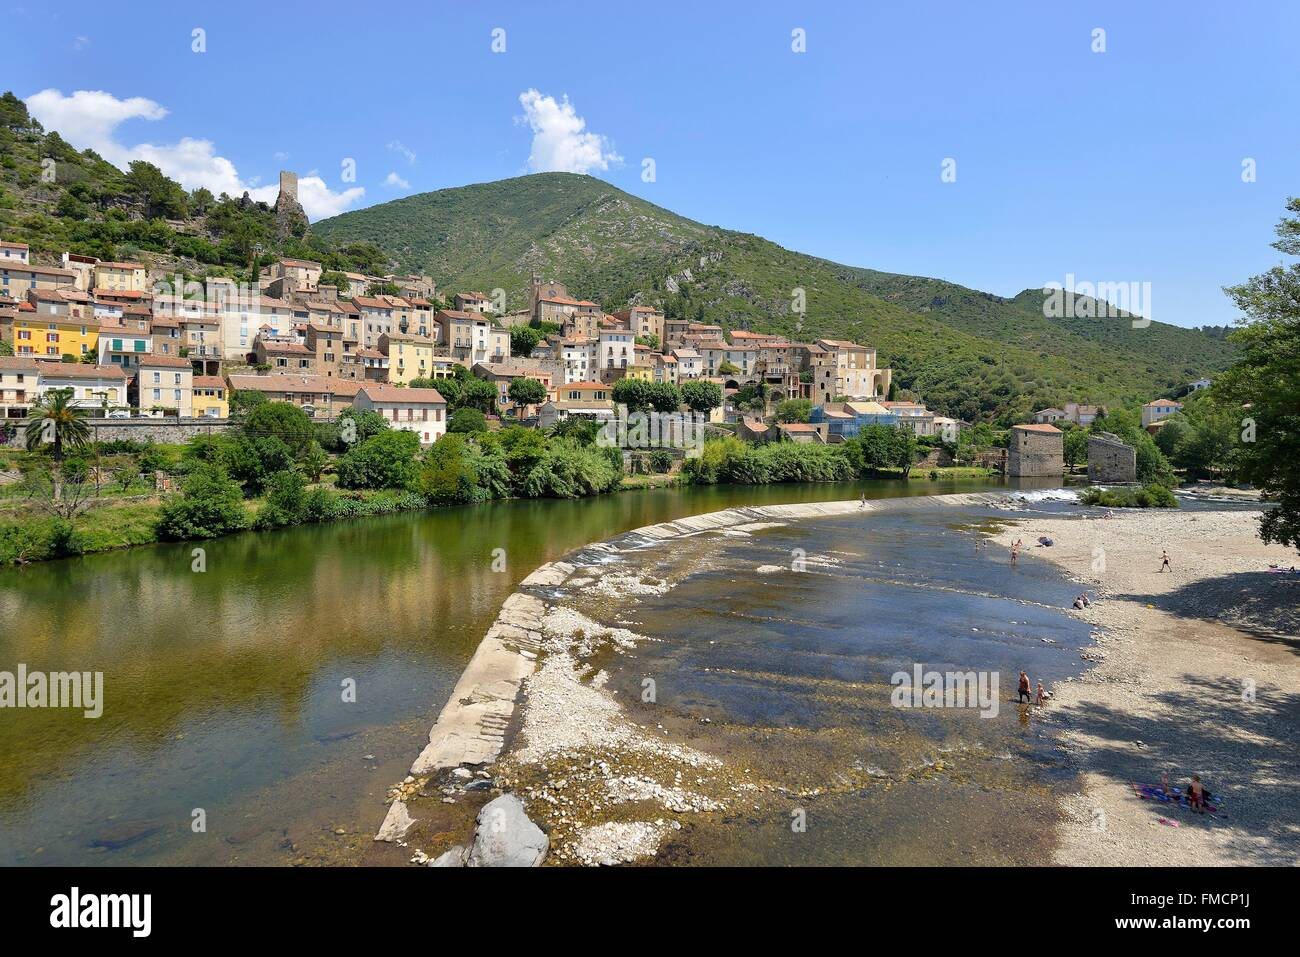 France, Herault, Orb valley, Roquebrun village and Orb River - Stock Image